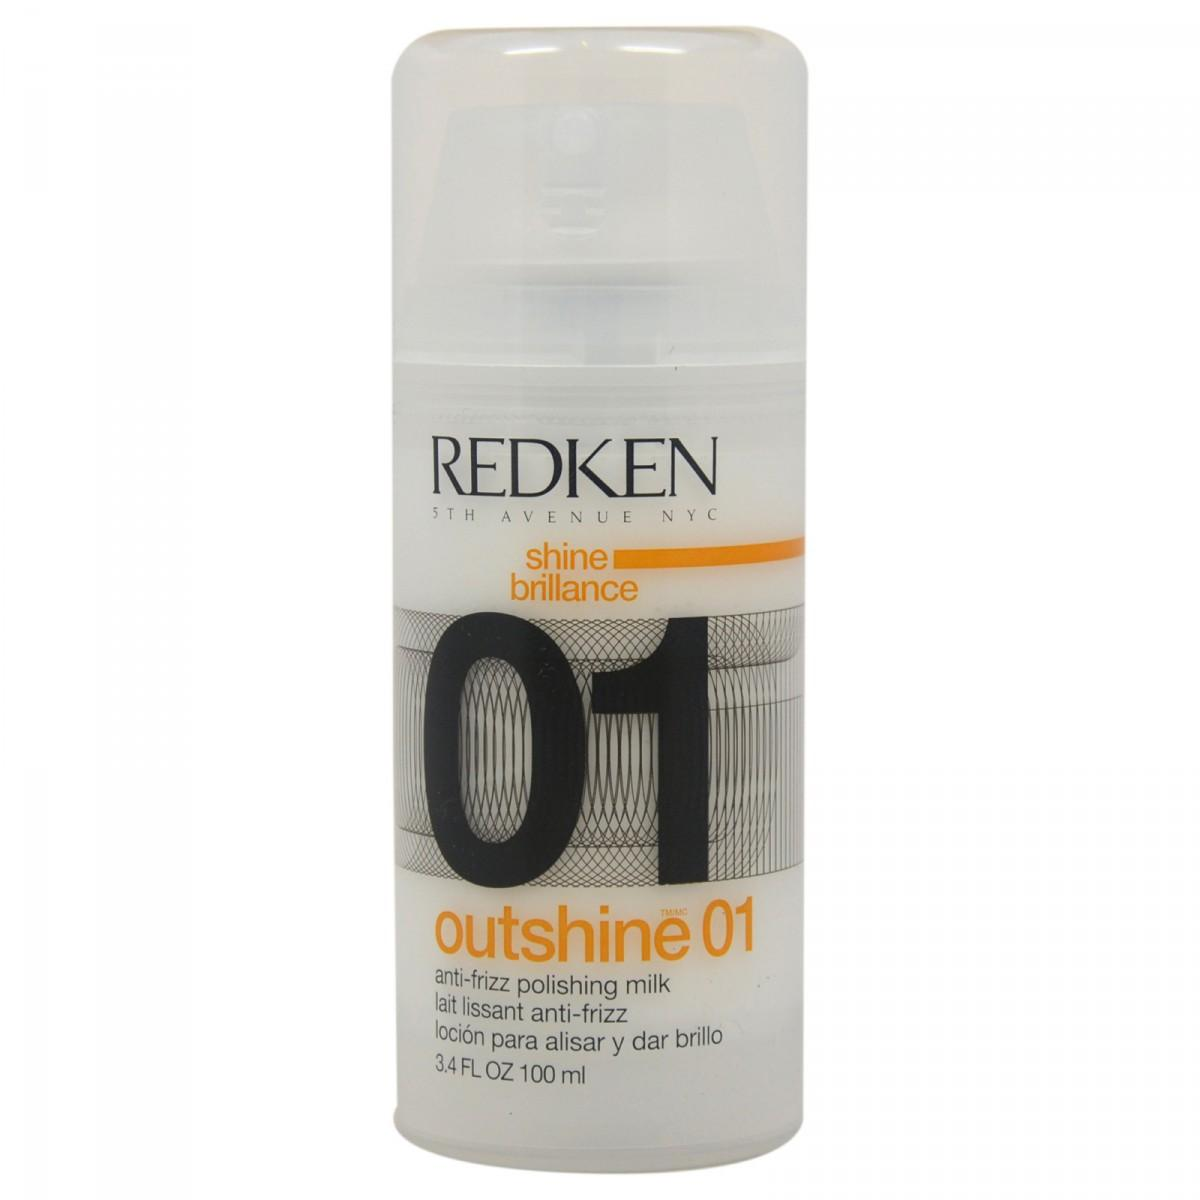 Redken Outshine 01 Lotion 100 ml